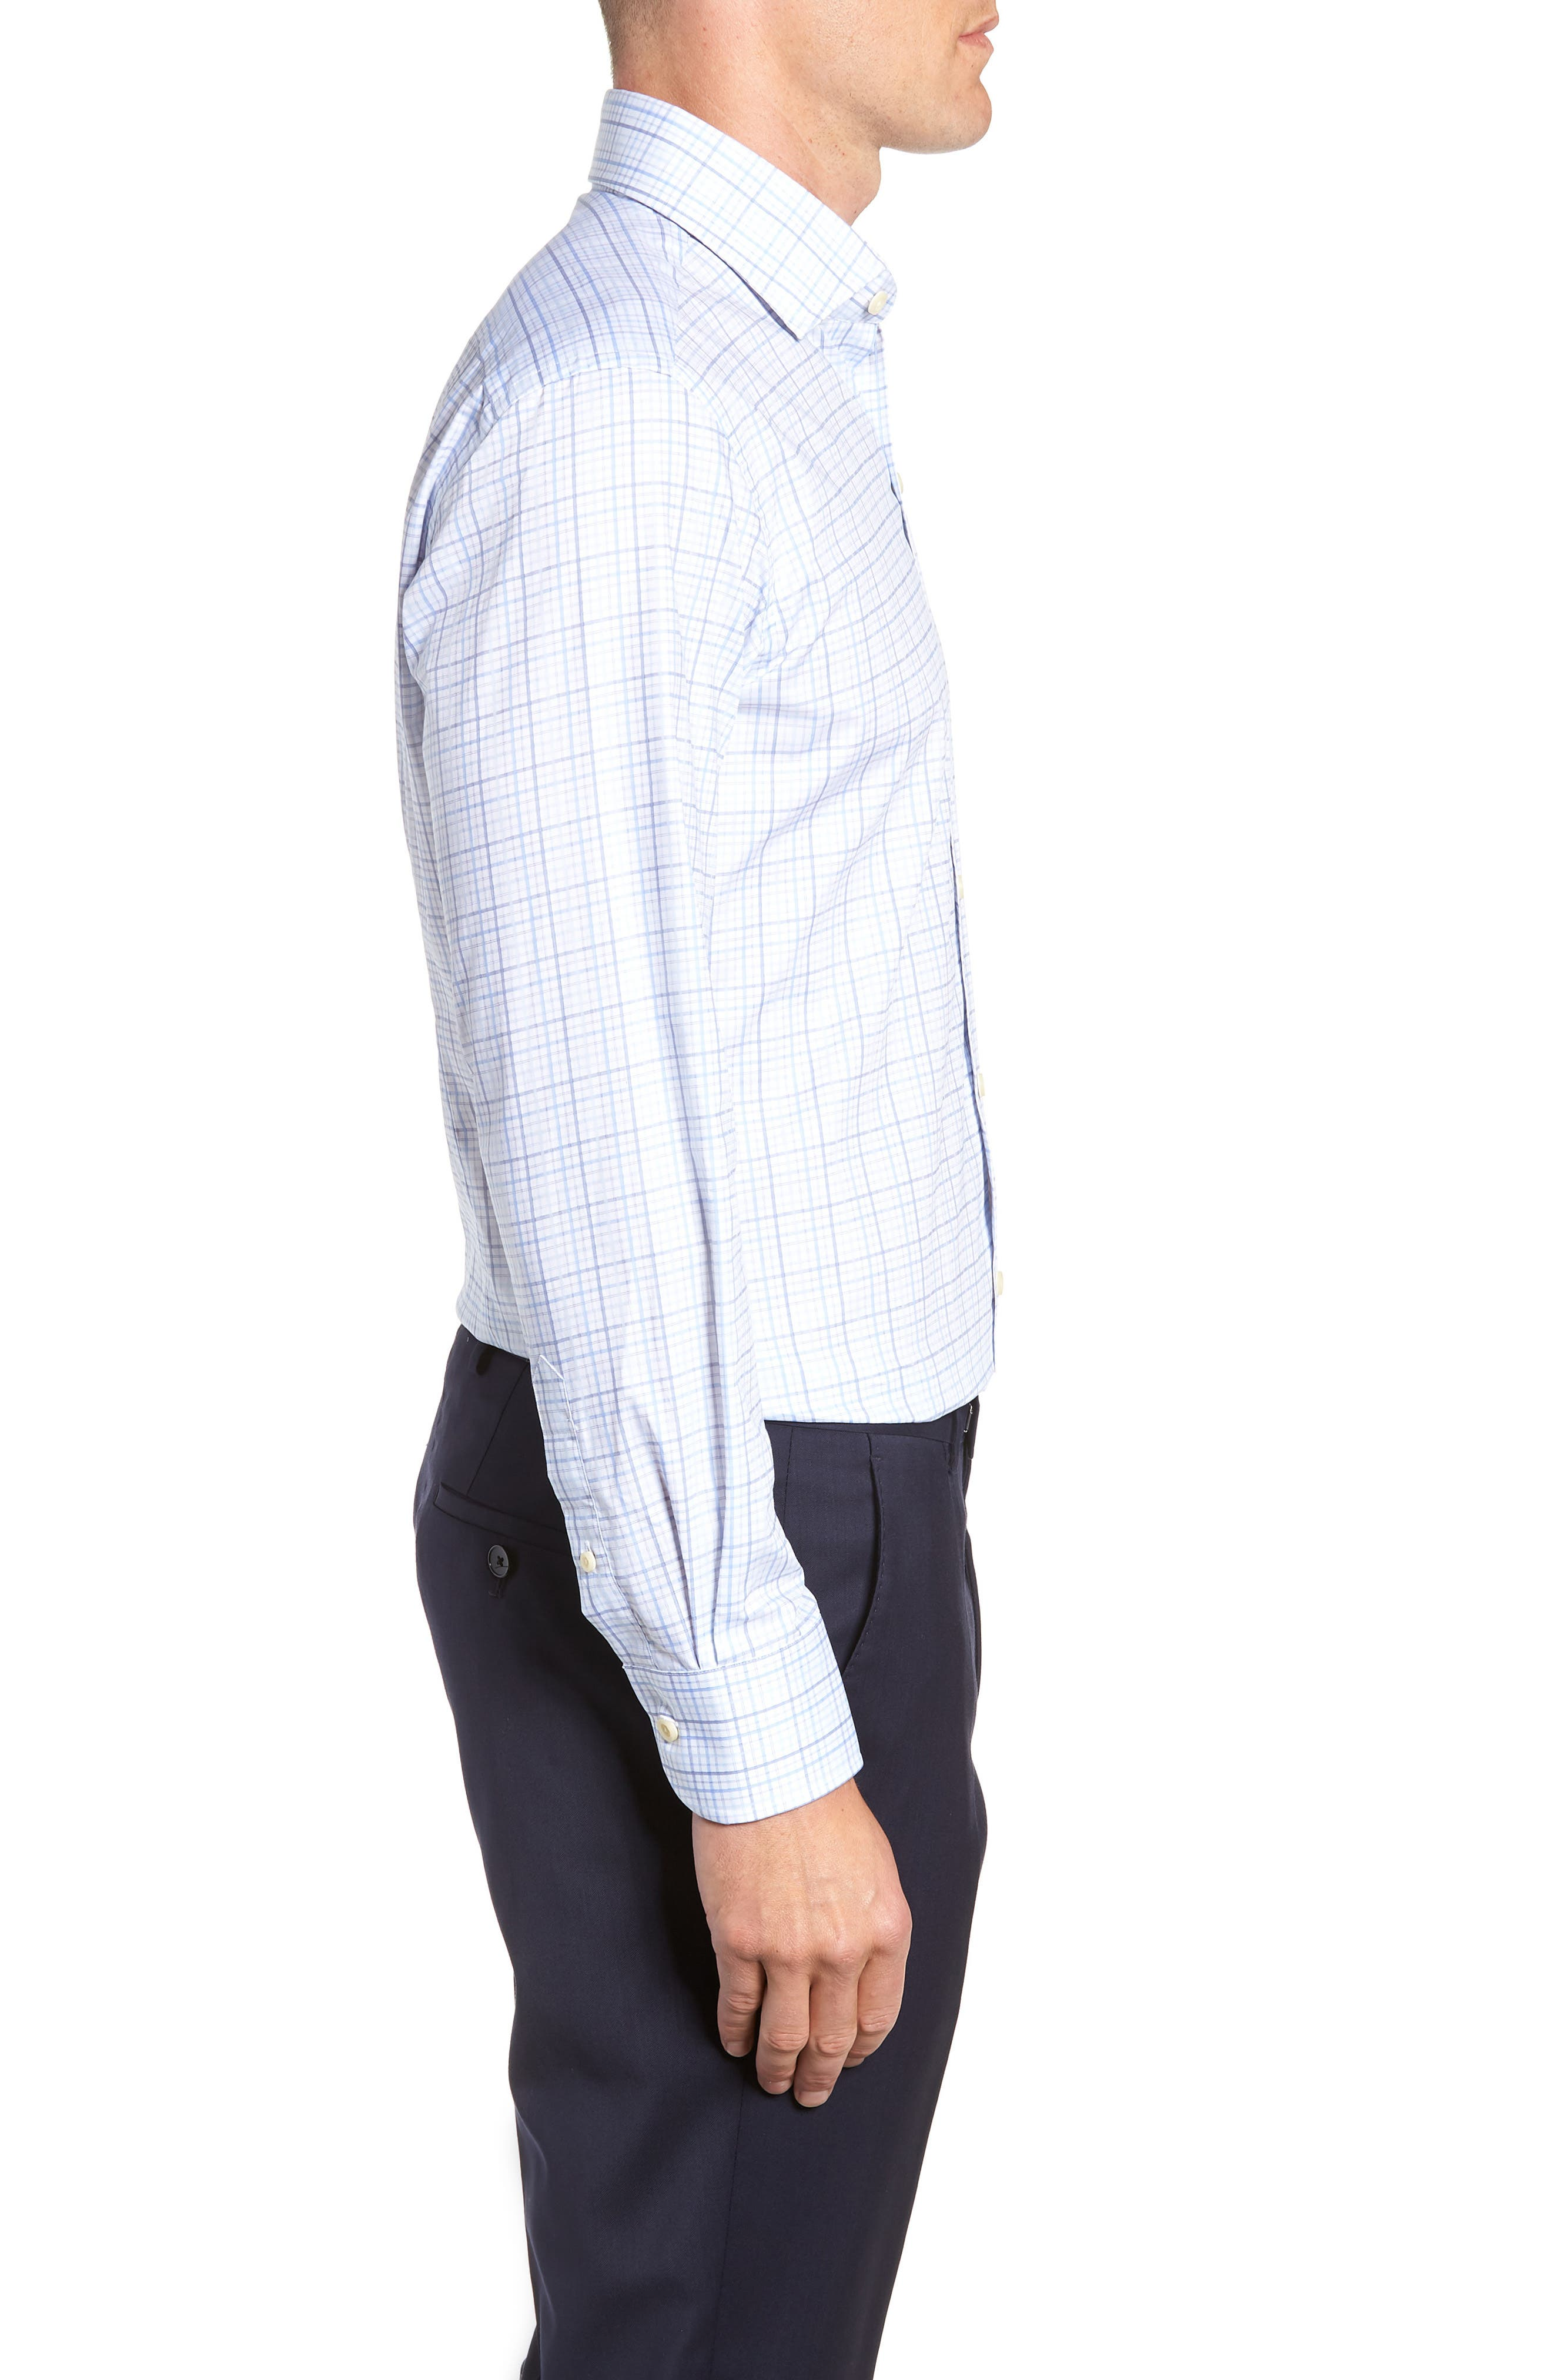 Drazin Trim Fit Check Dress Shirt,                             Alternate thumbnail 4, color,                             BLUE